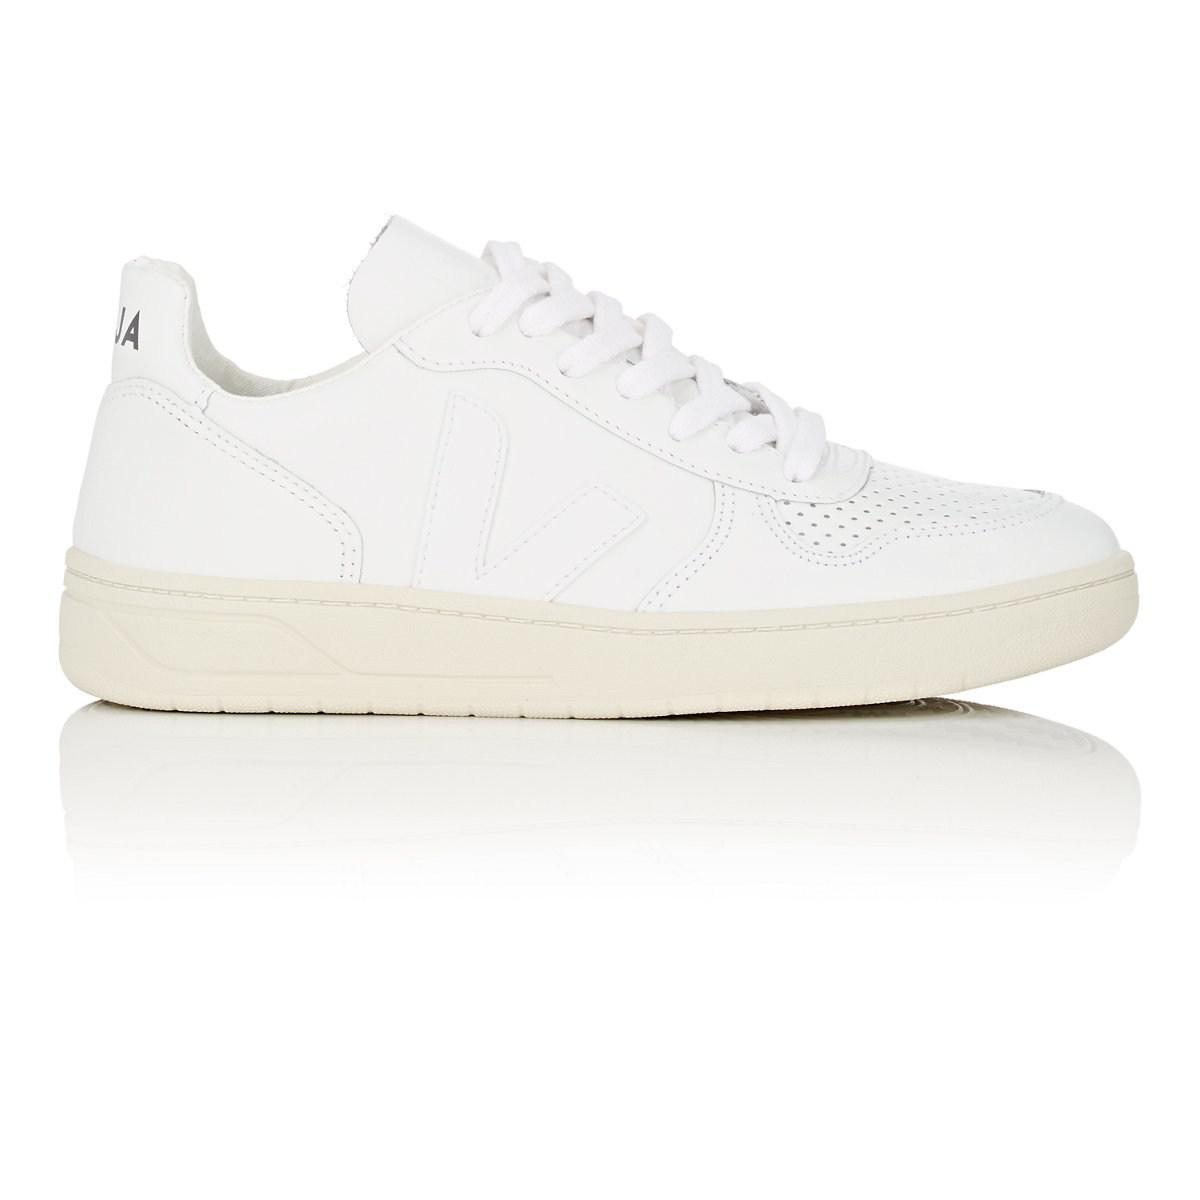 6d4524bf44ca Veja. Women s White V-10 Leather Sneakers.  150 From Barneys New York